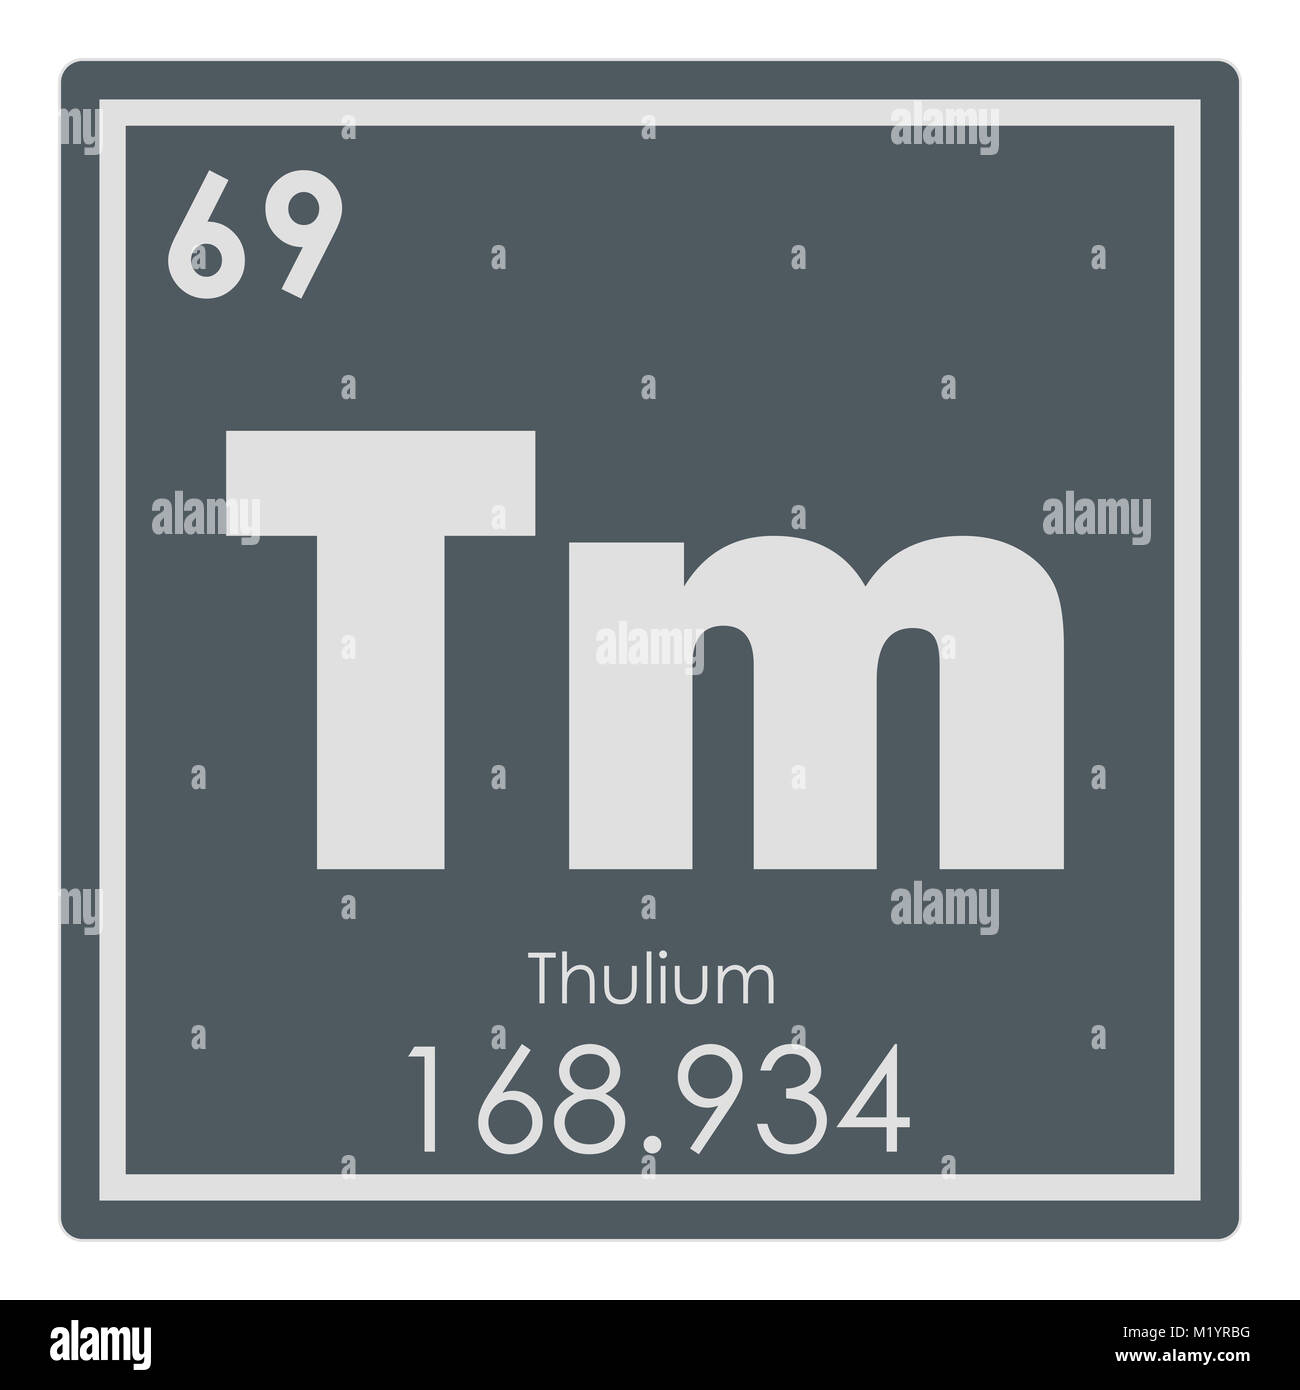 Symbol chemical element thulium stock photos symbol chemical thulium chemical element periodic table science symbol stock image urtaz Gallery